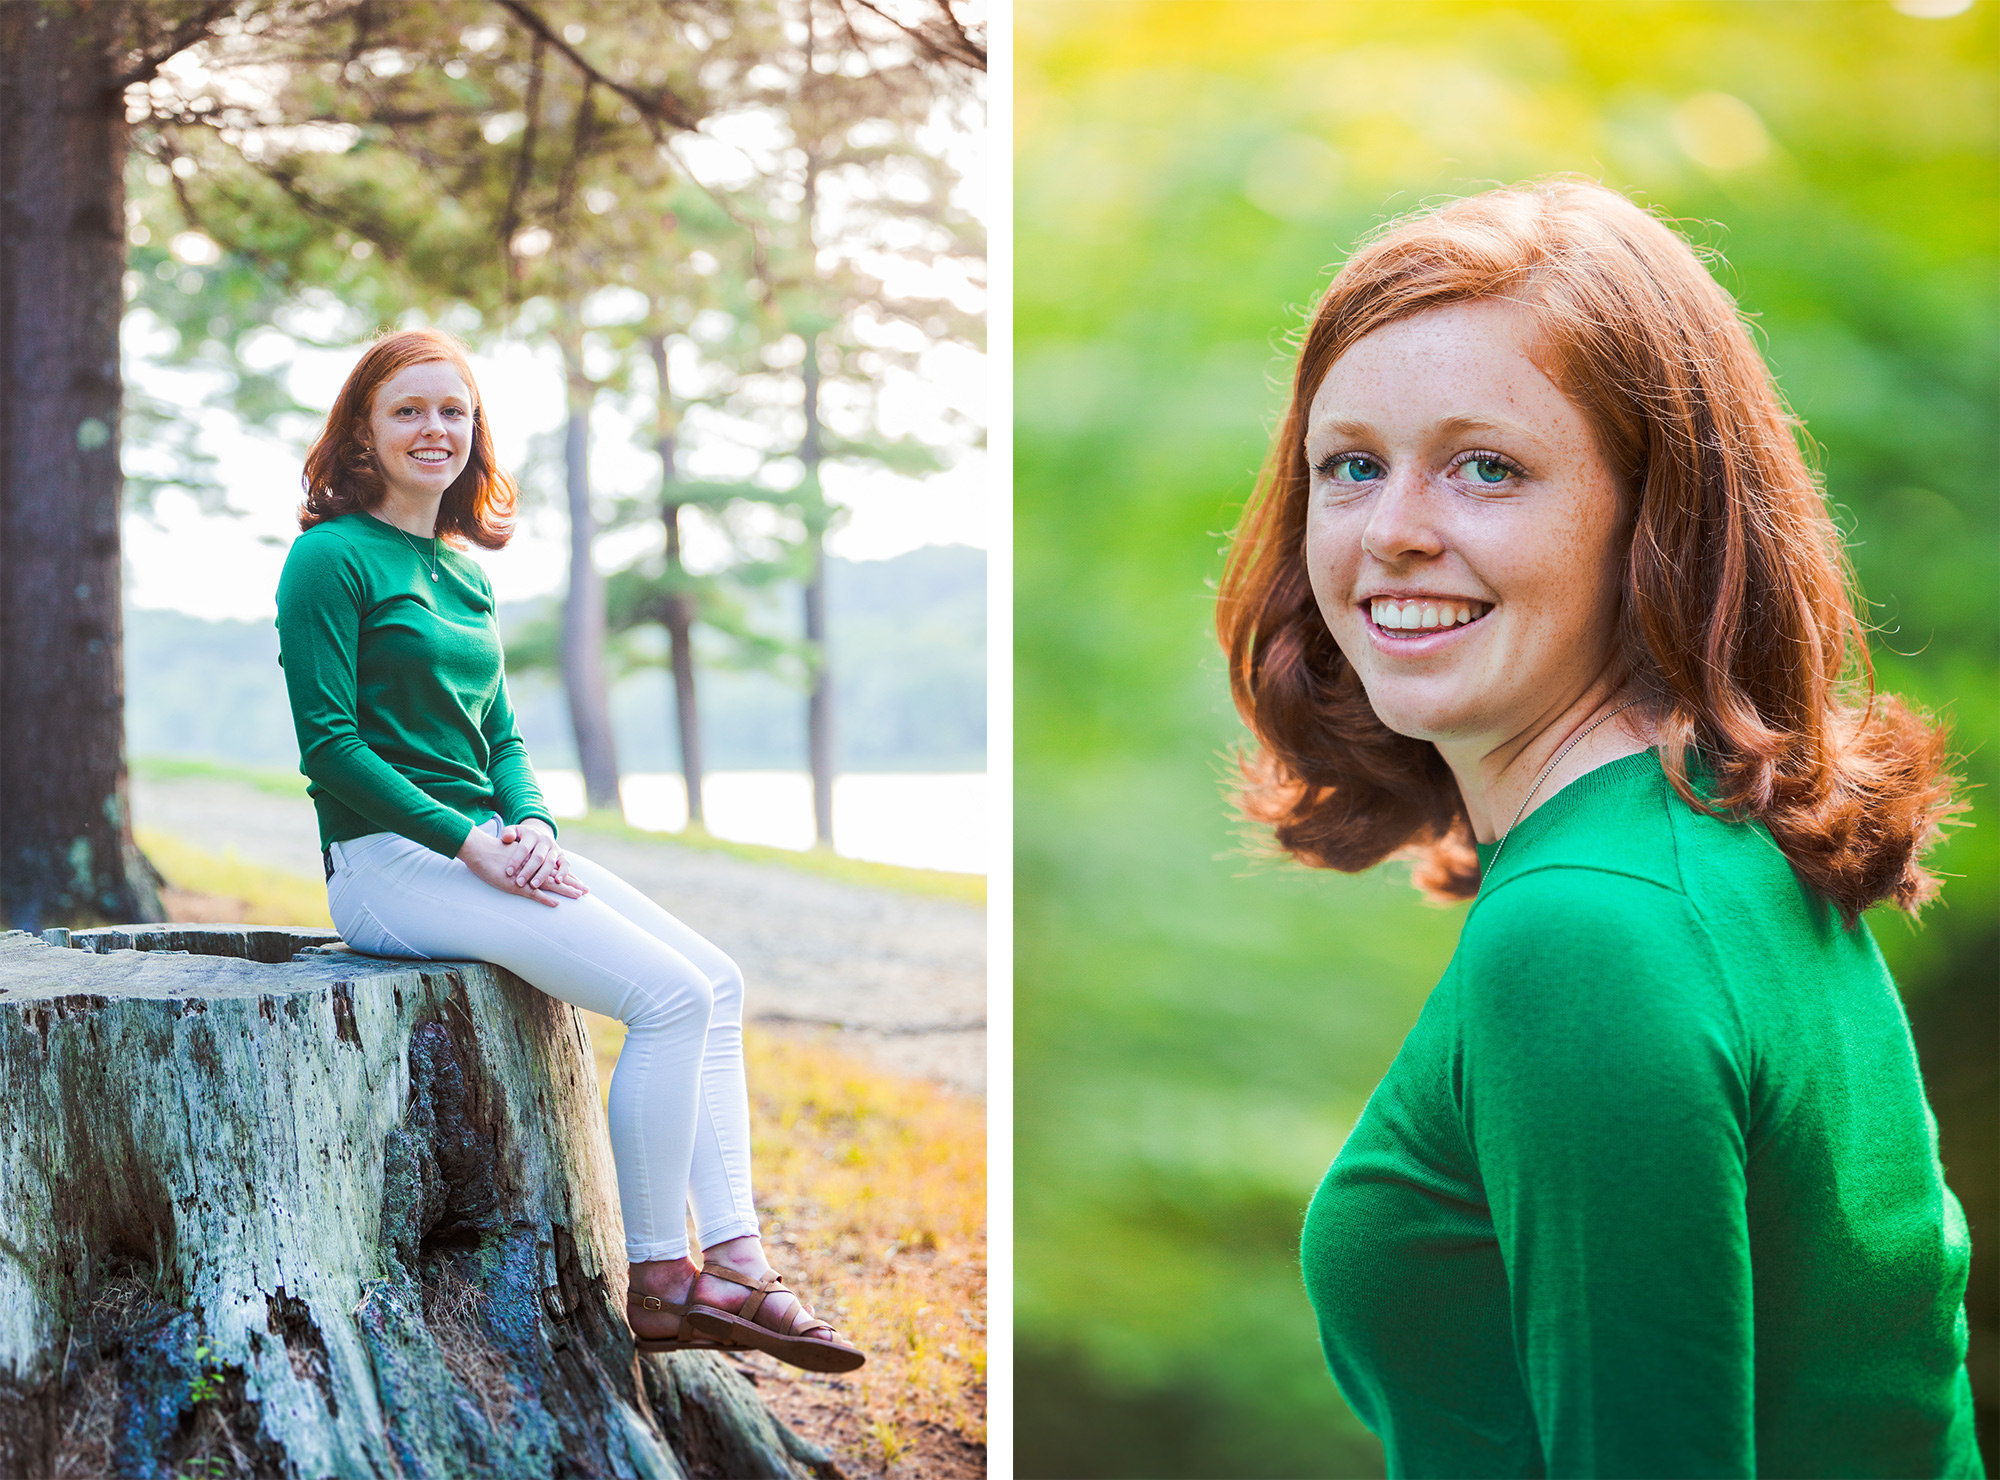 Bradley Palmer Senior Portrait Photographer | Stephen Grant Photography